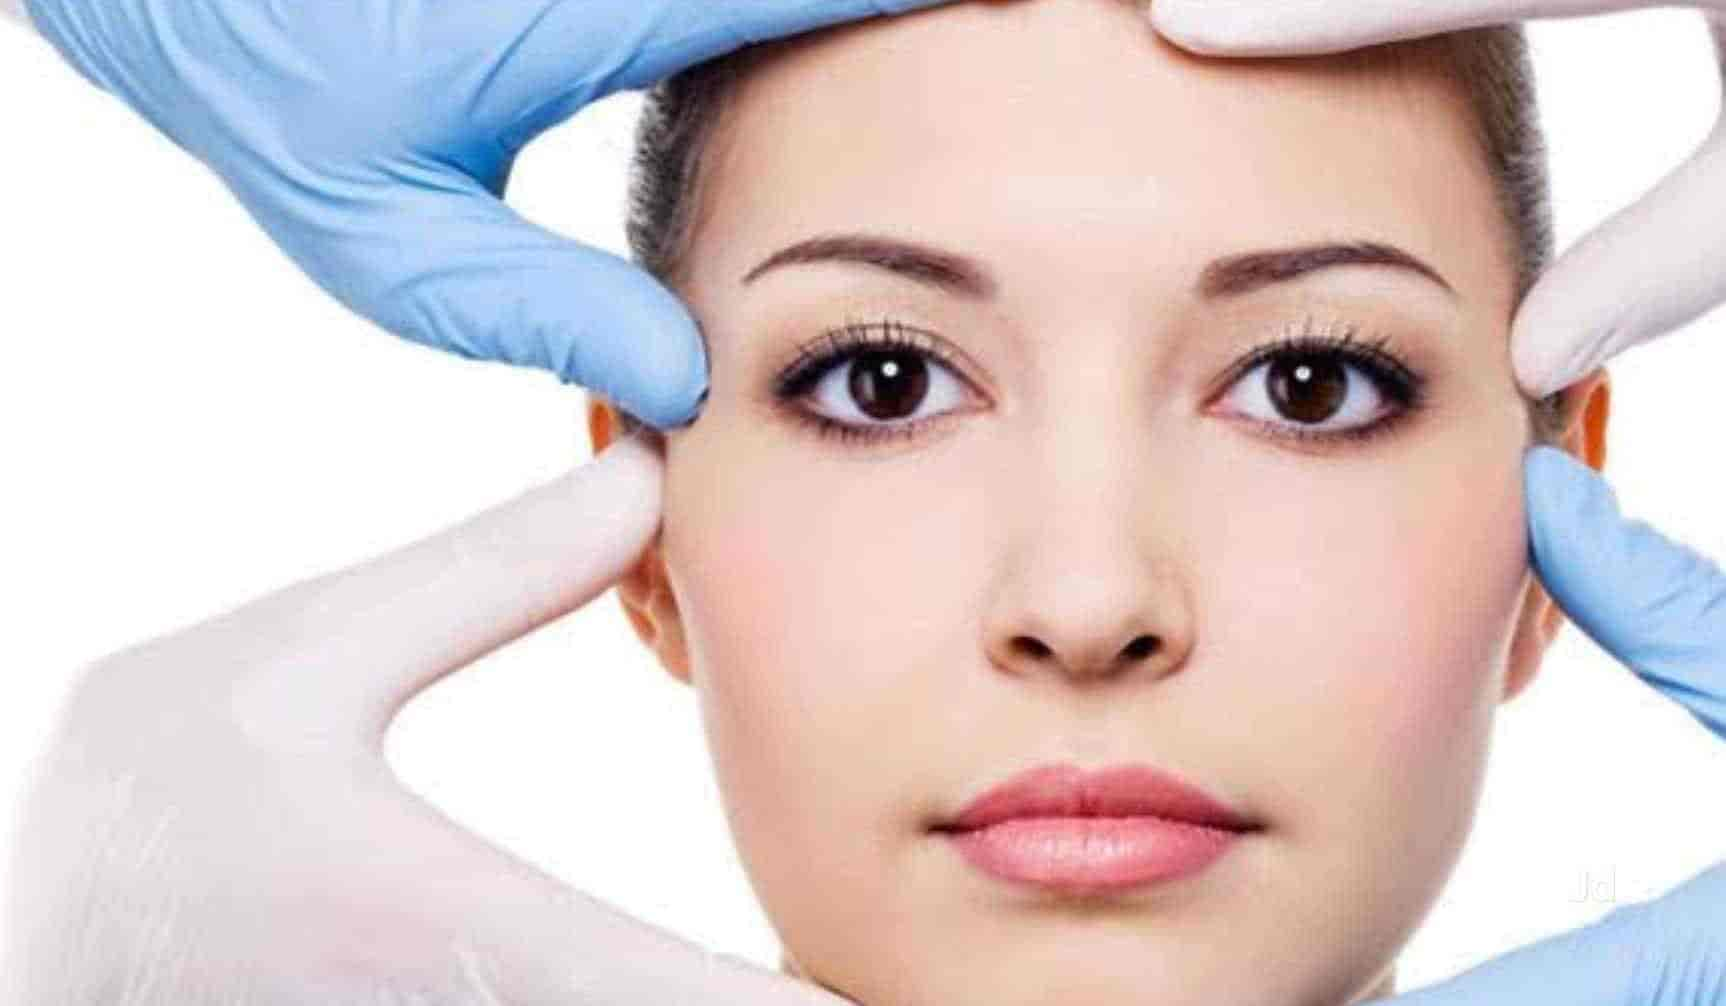 Dr Antionetta Ashwini Skin Specialist Dermatologists Book Appointment Online Dermatologists In T Nagar Chennai Justdial